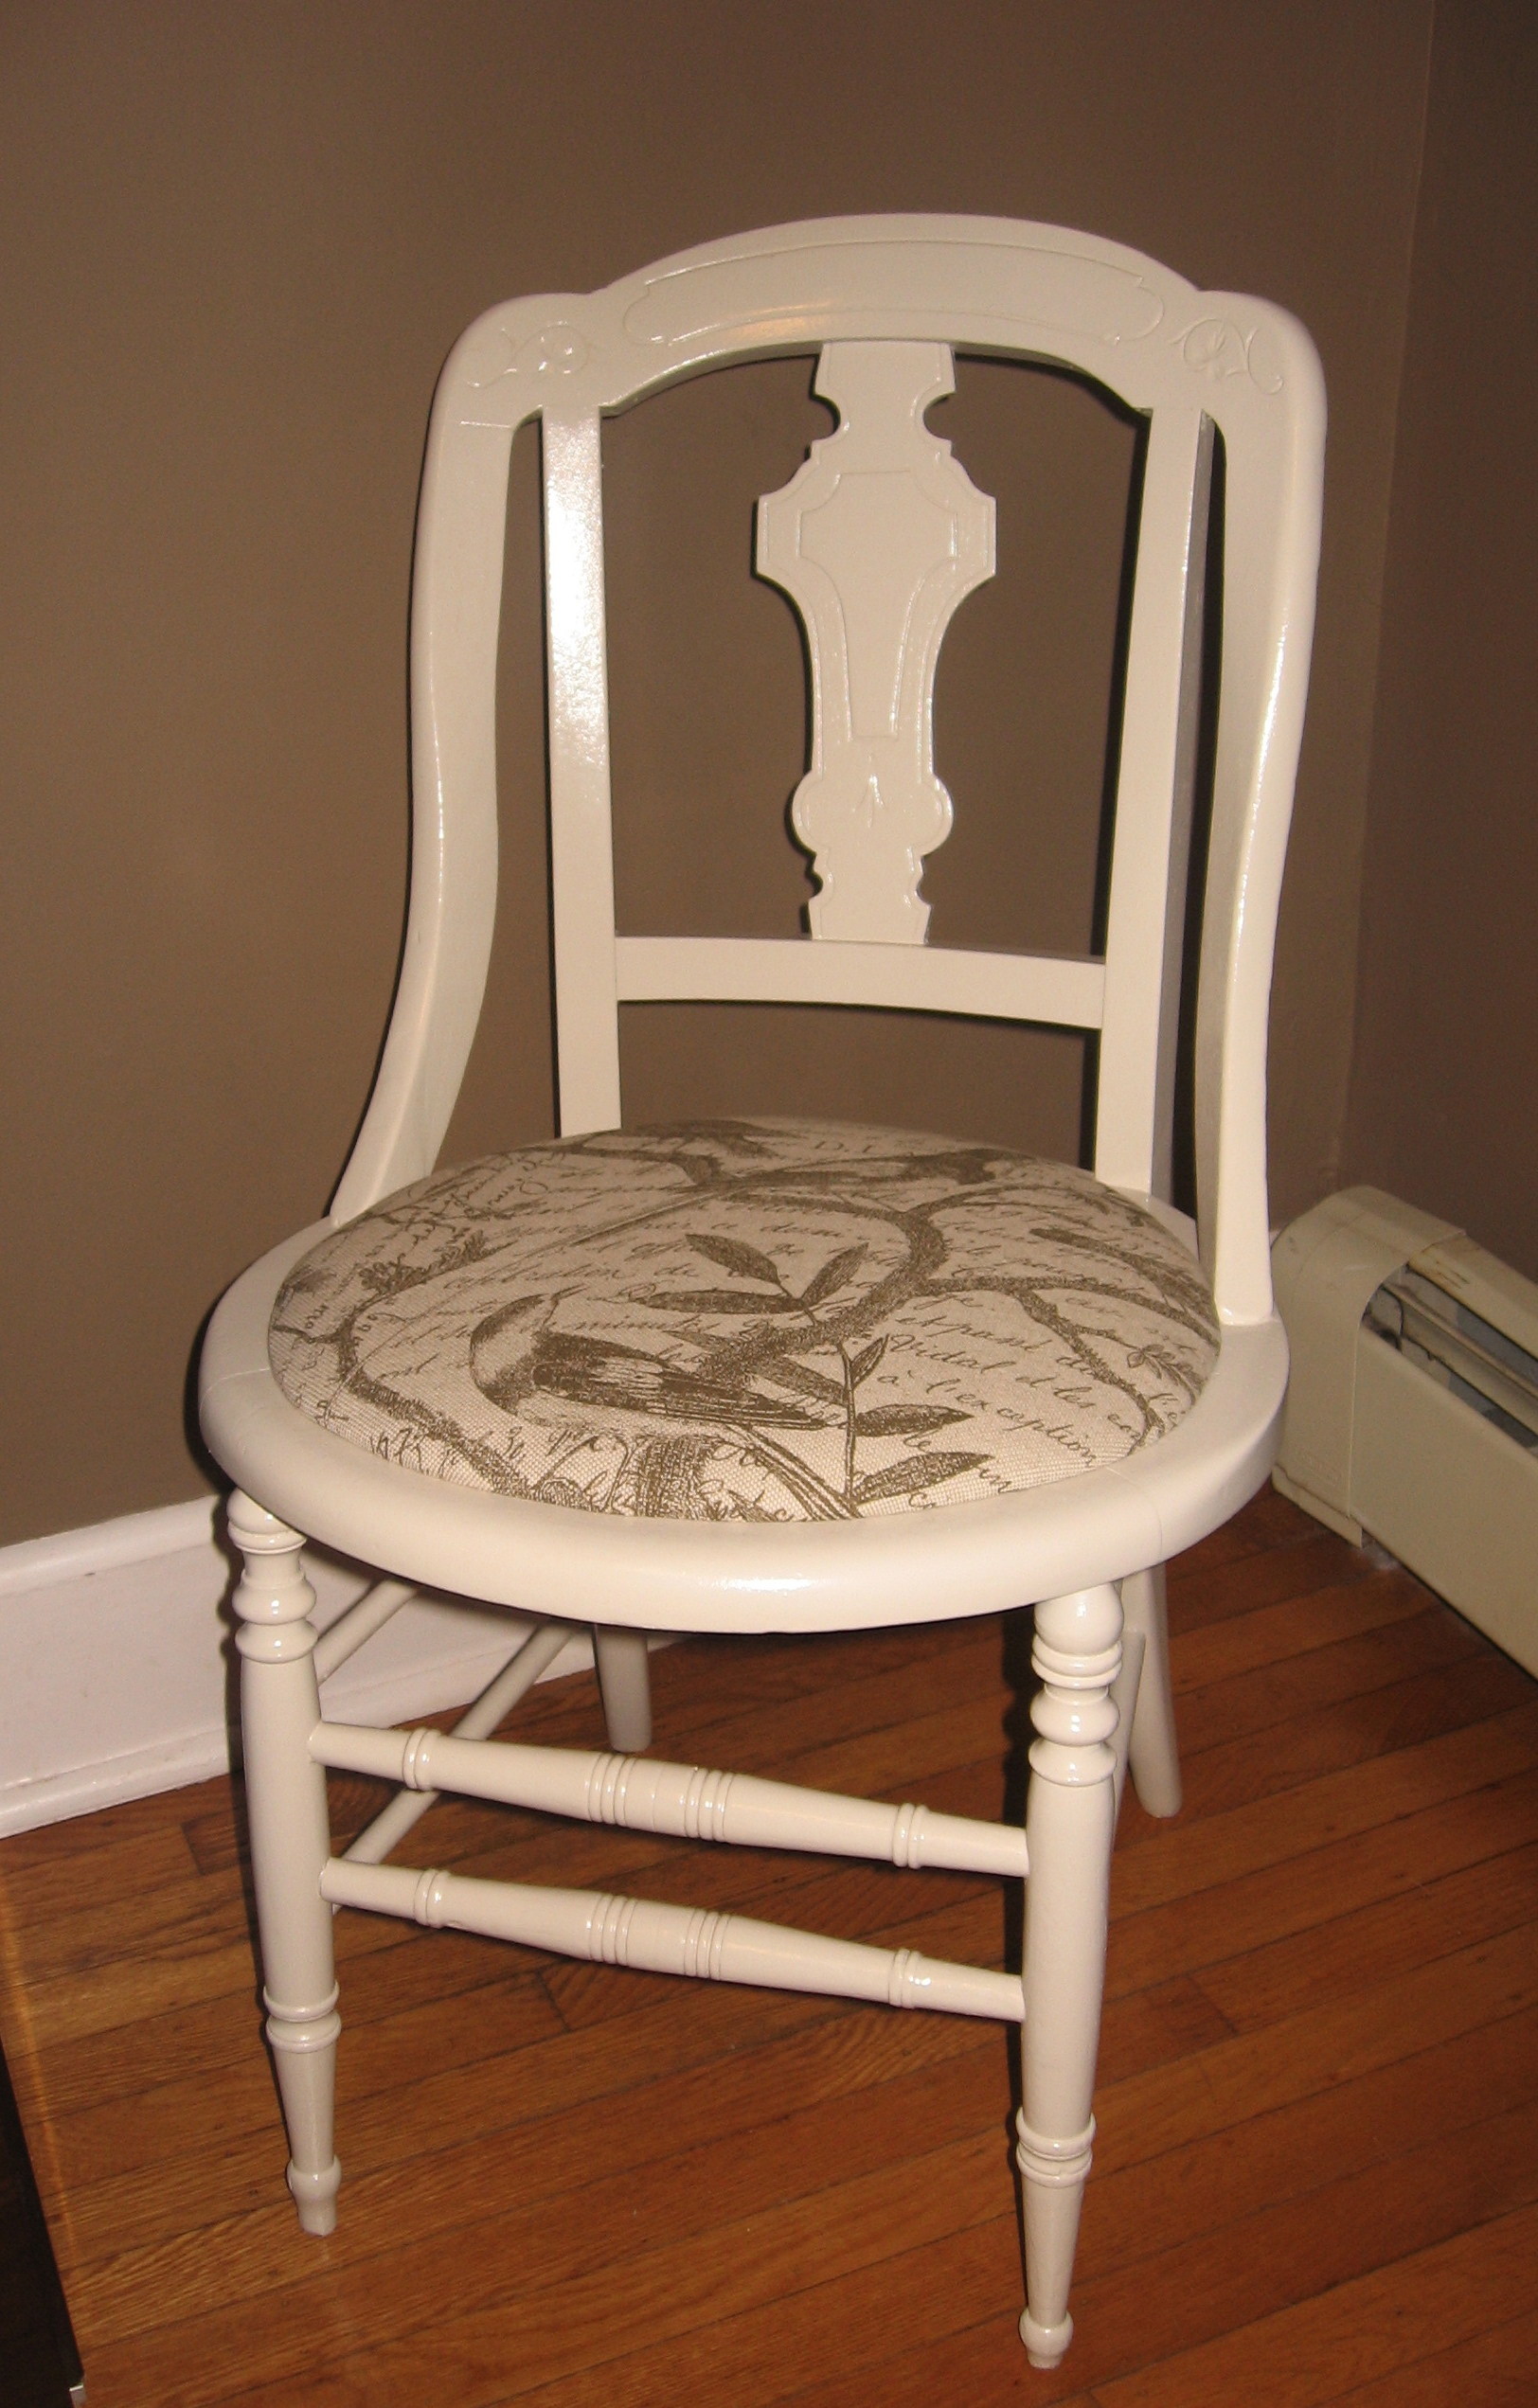 furniture tags bird fabric chair makeover cheap and easy diy chair